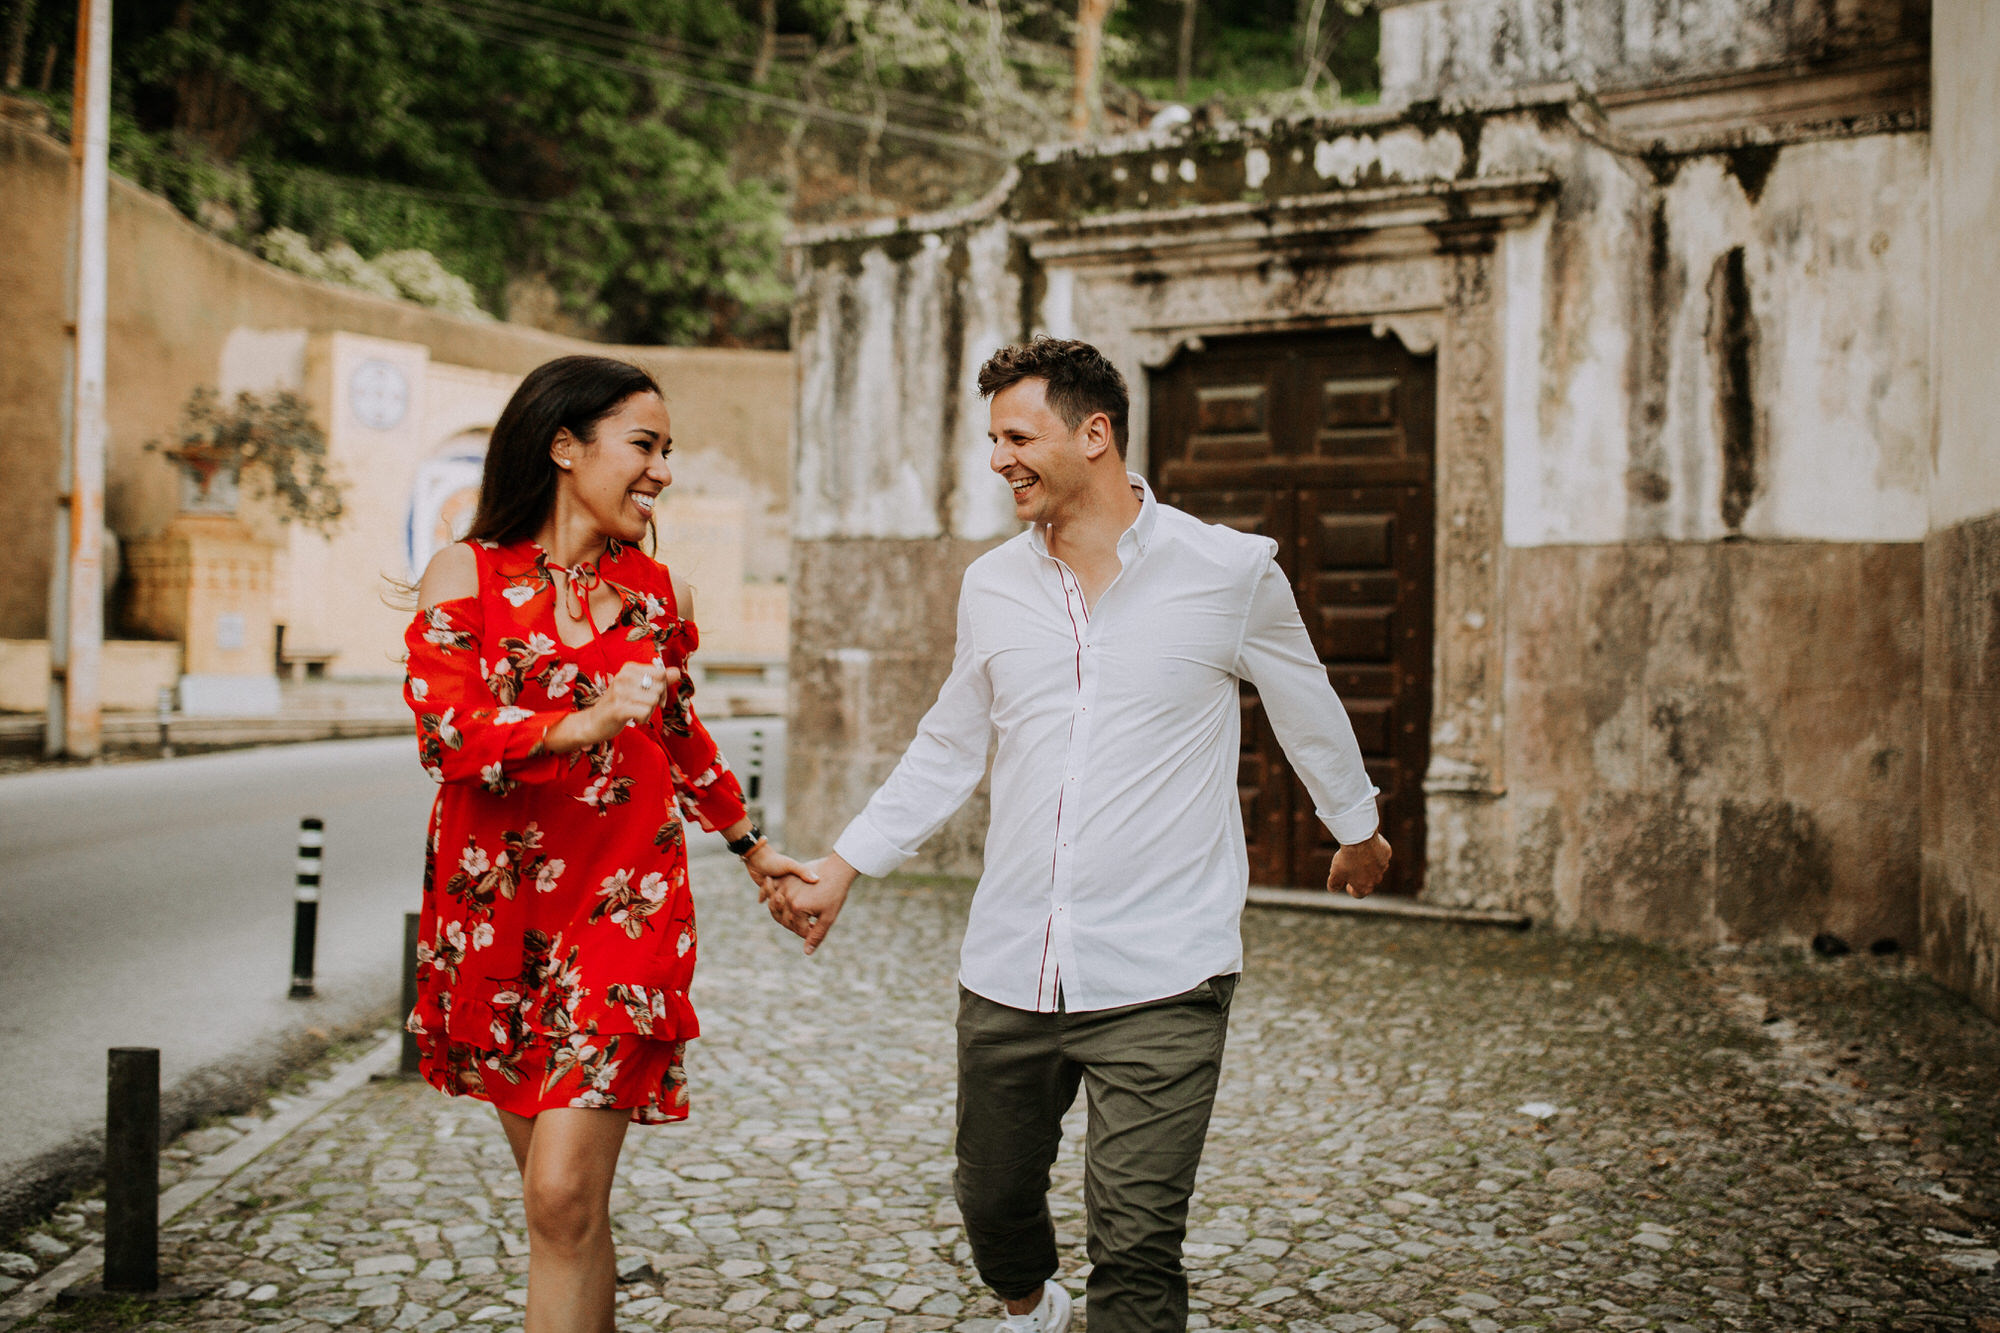 37-sessao-noivado-engagement-love-session-Sintra-lisboa-town-wedding-photography-photographer-natural-best-venue-planner-destination-filipe-santiago-fotografia-lifestyle-documentary